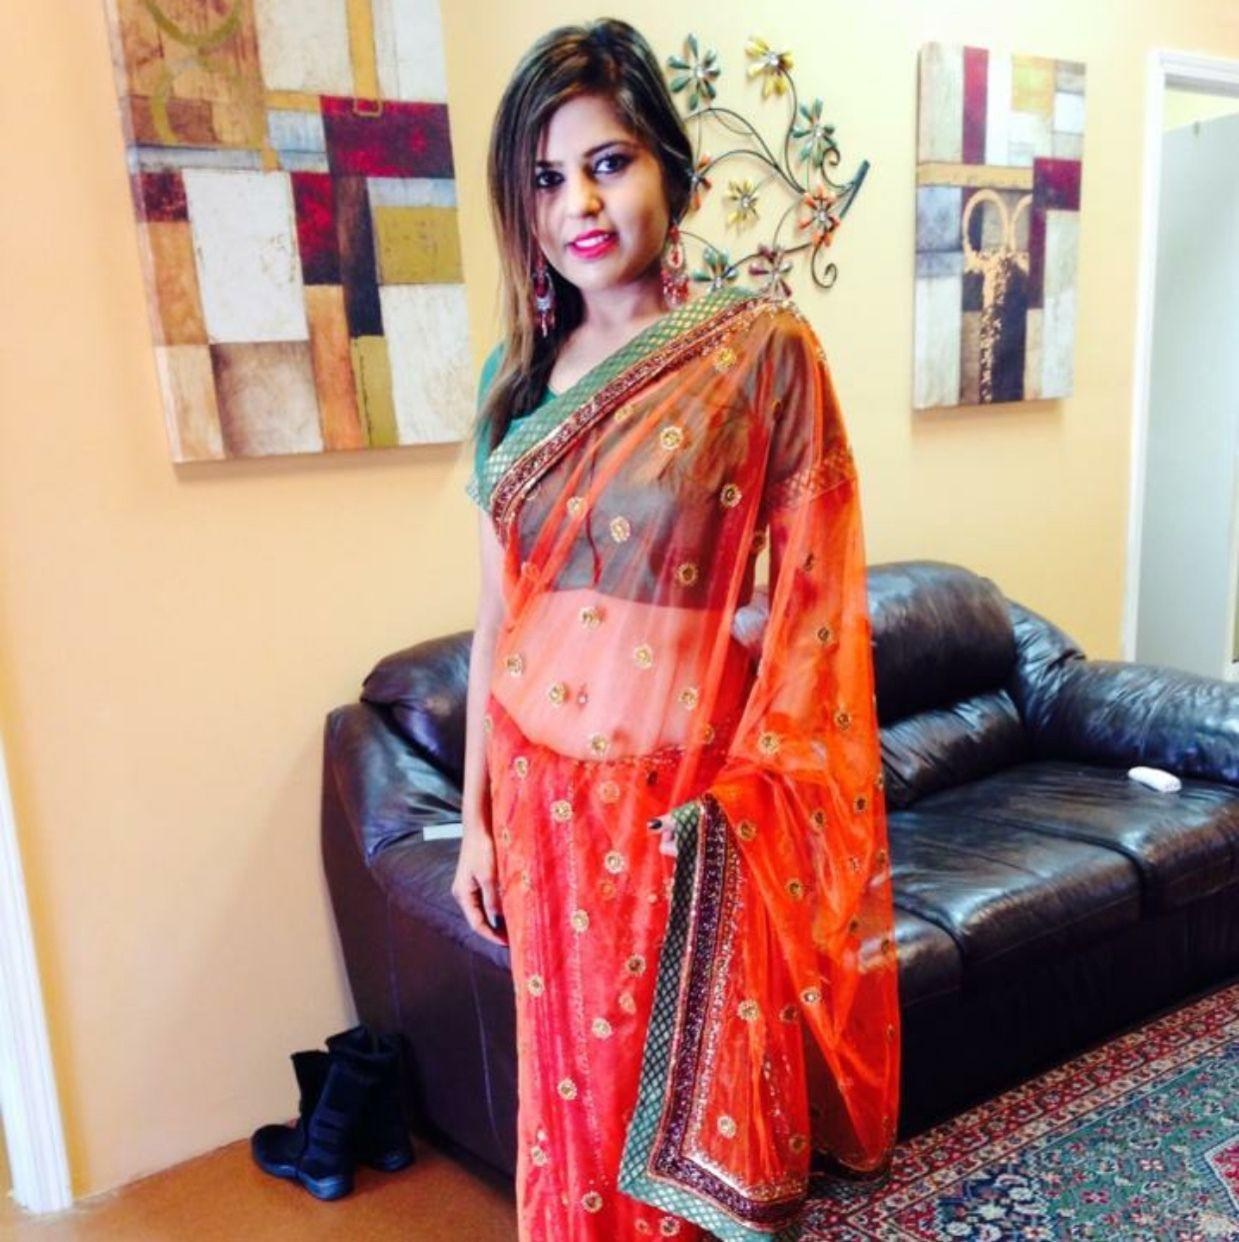 indian singles meetup atlanta Eventbrite - banyanway presents milan - a meetup for indian parents - sunday, march 4, 2018 at sharon springs park community building, cumming, ga find event and ticket information.